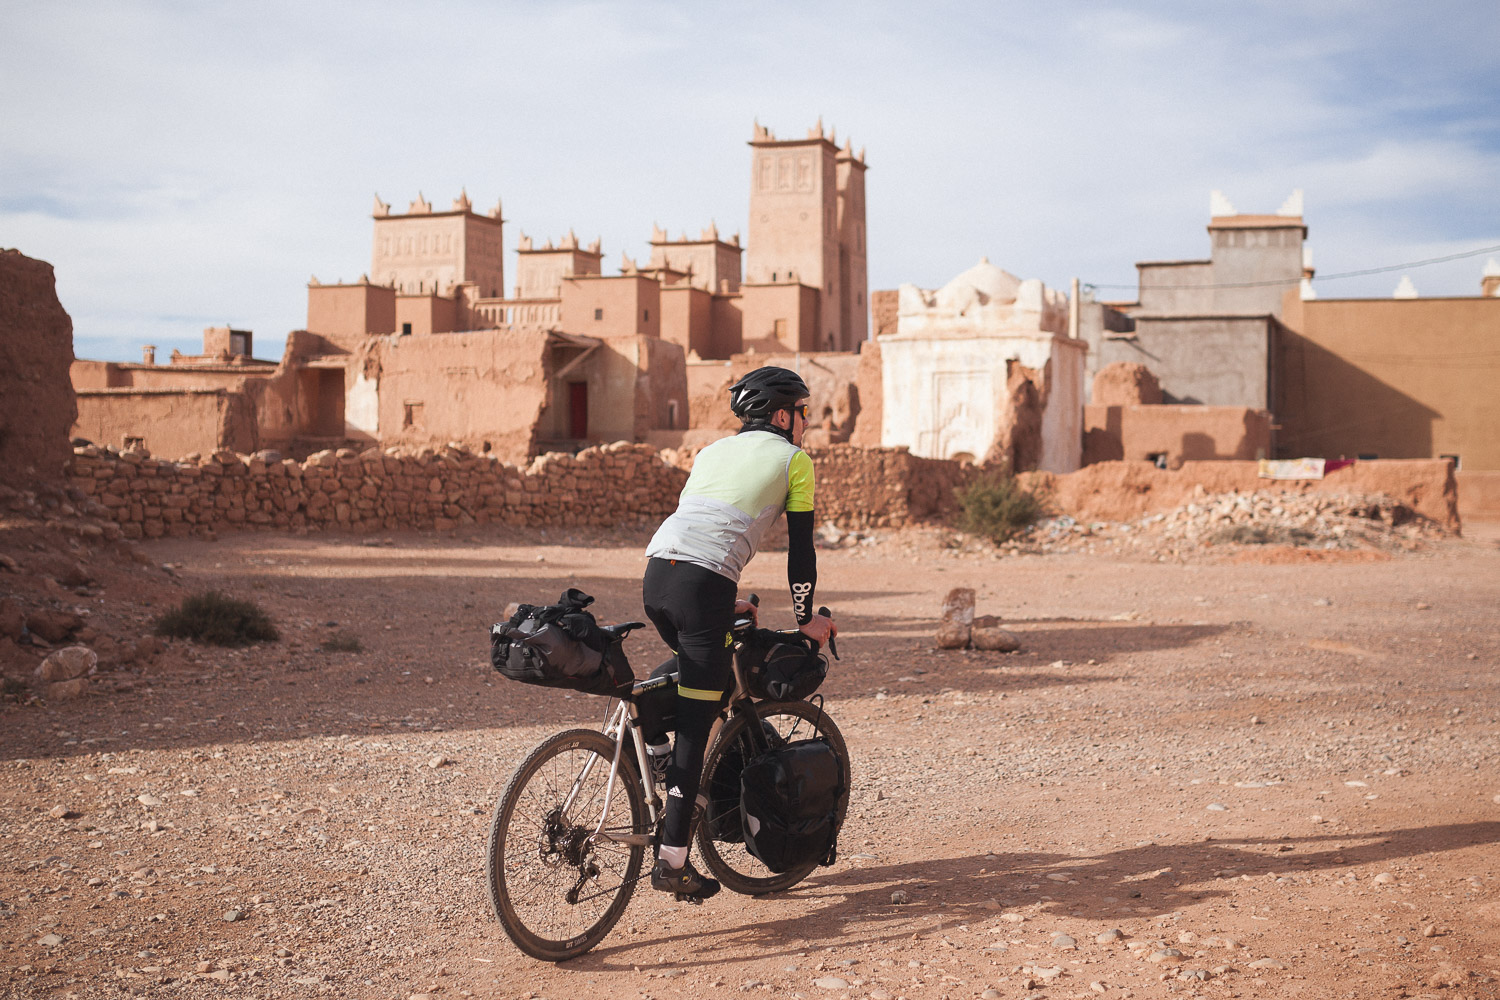 8bar bikes adventures morocco gravel 20151211 0078 bearbeitet - 8bar Adventures - Morocco - High Atlas - Part 2/2